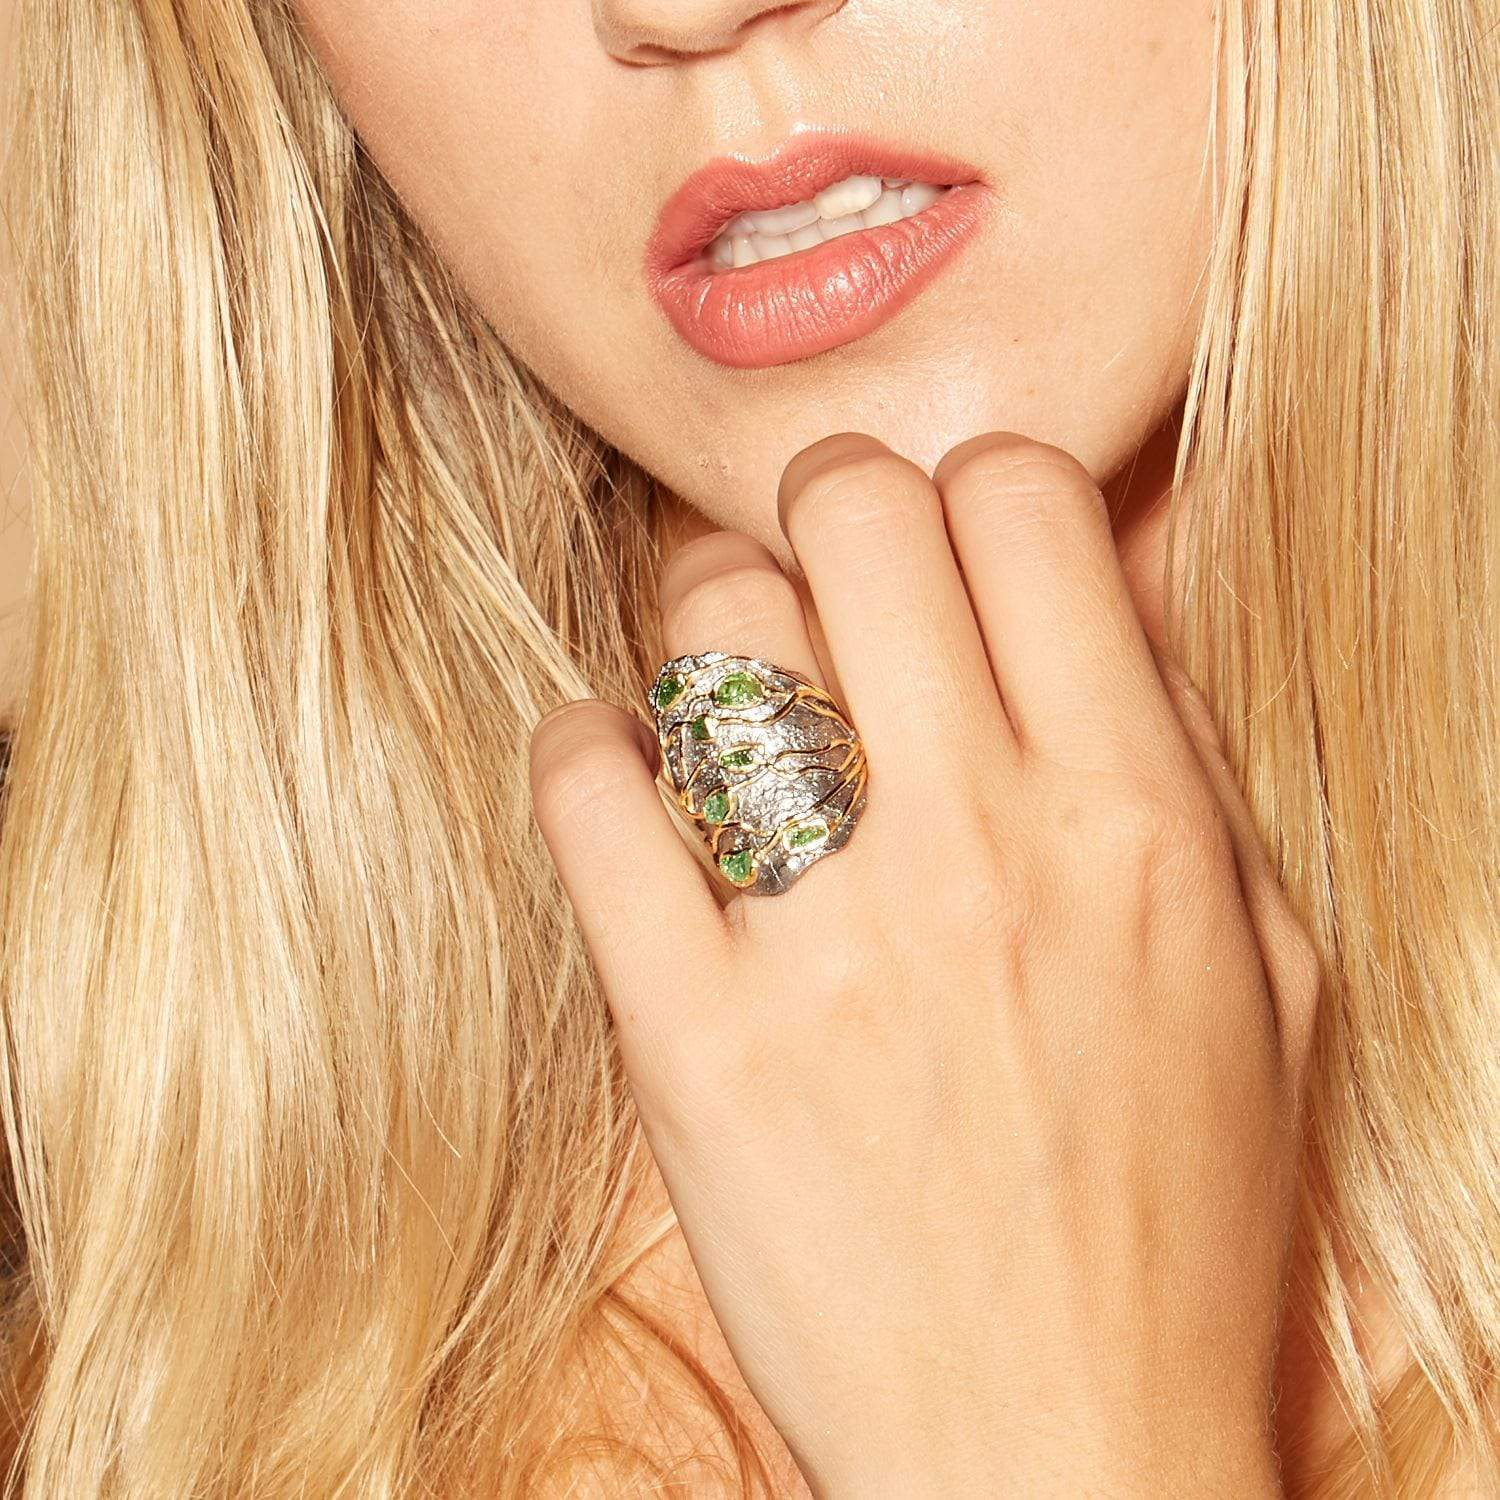 Claiborne Ring, Gold, gray, Handmade, Rhodium, spo-disabled, StoneColor:Green, Style:Everyday, Tsavorite, Type:StoneCandyWired Ring